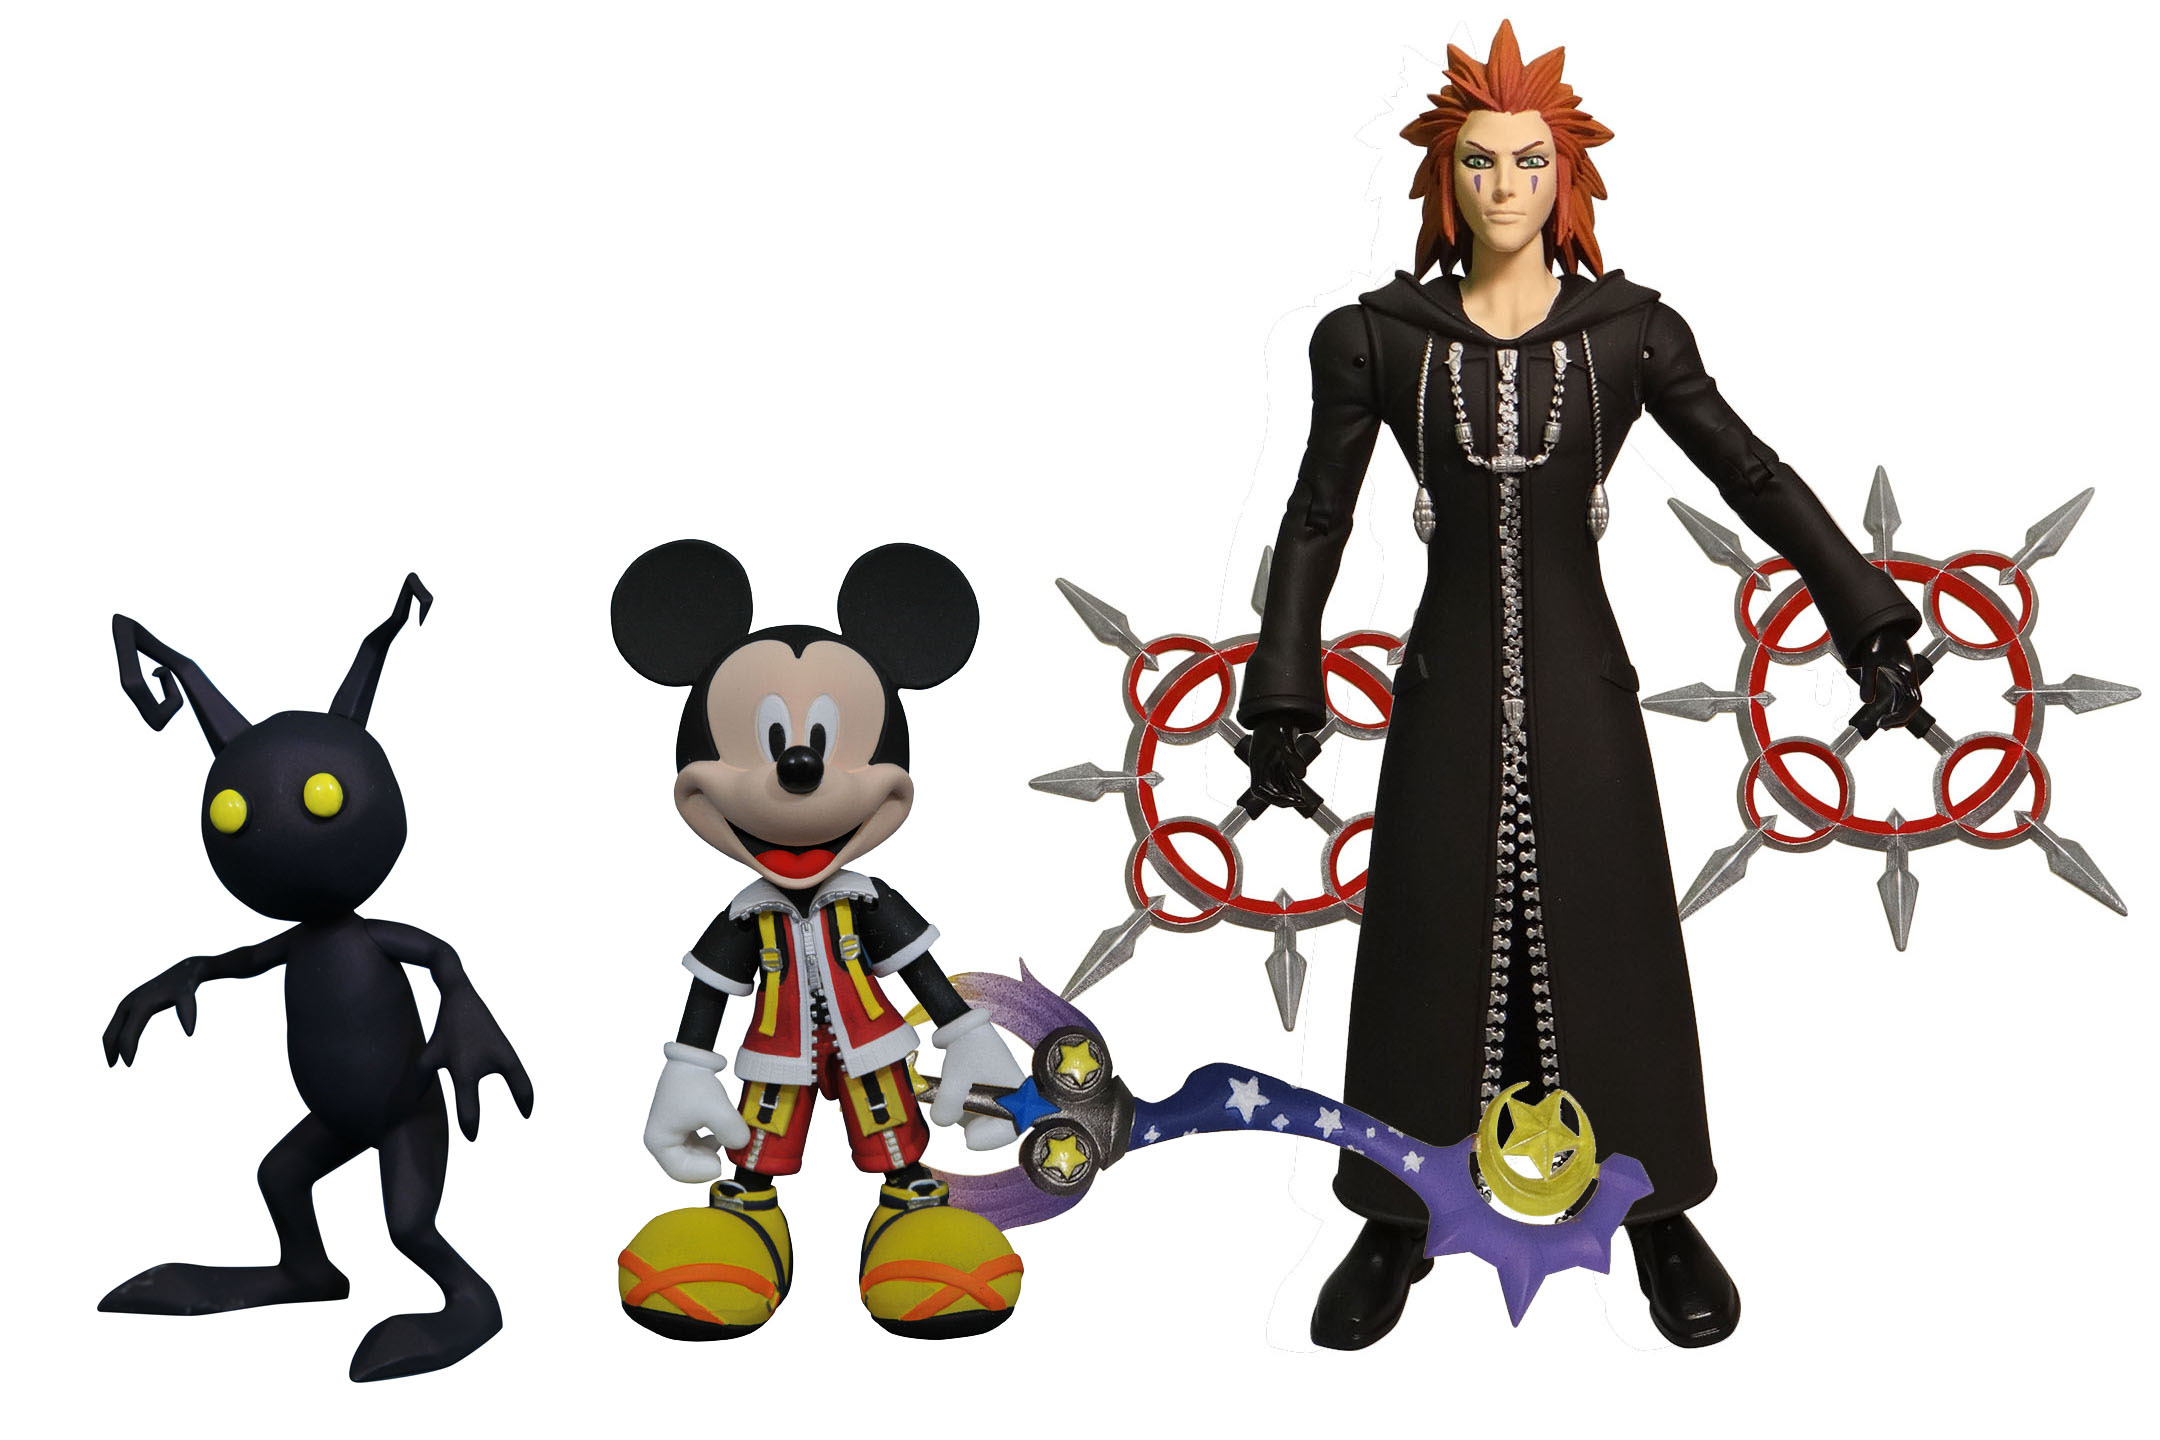 Check Out These Kingdom Hearts 2 Figures Coming This Fall.